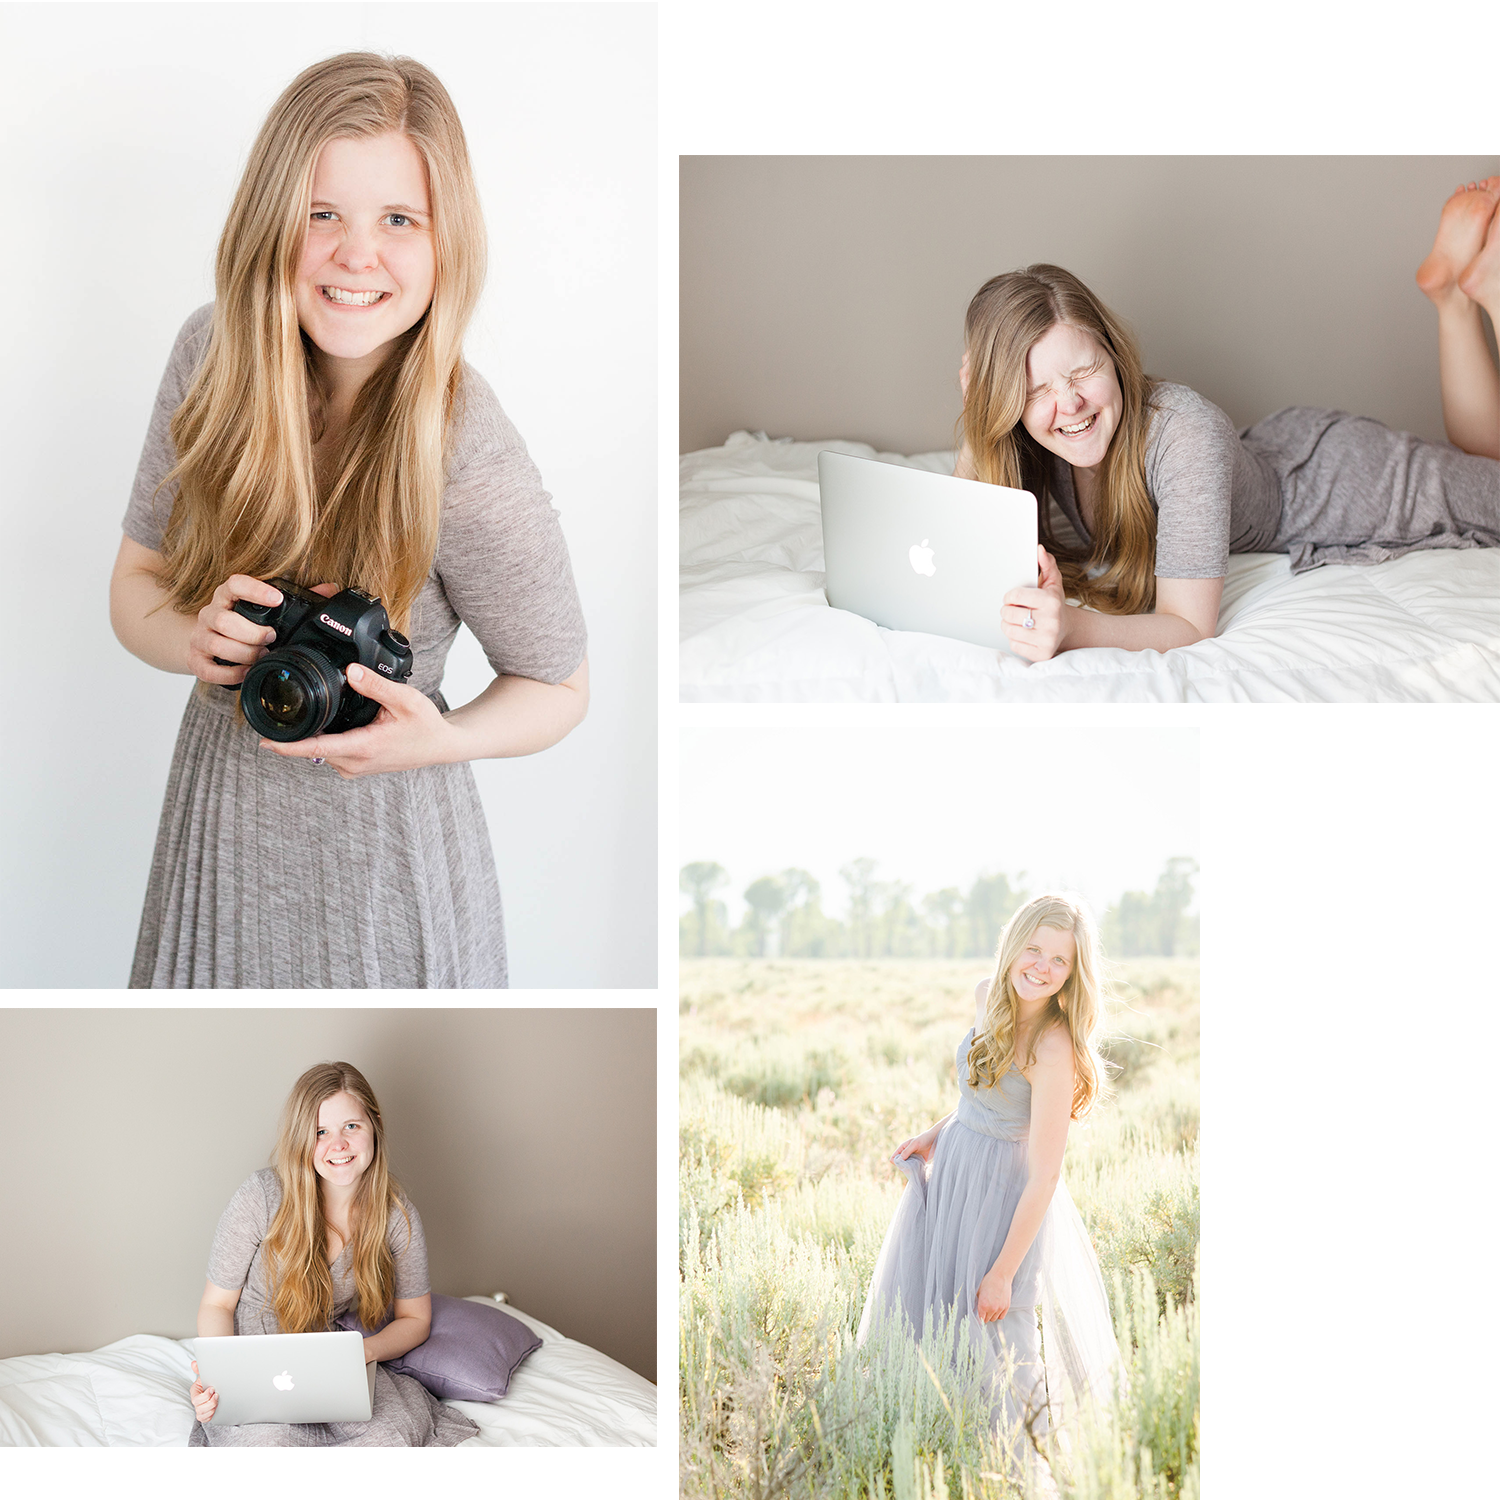 Hello! - I'm Natalie and I'm so thrilled you're here! I have been photographing portraits and weddings in the Houghton/Hancock area since 2012. I was still in high school when I first started and it has been a huge part of my life since!